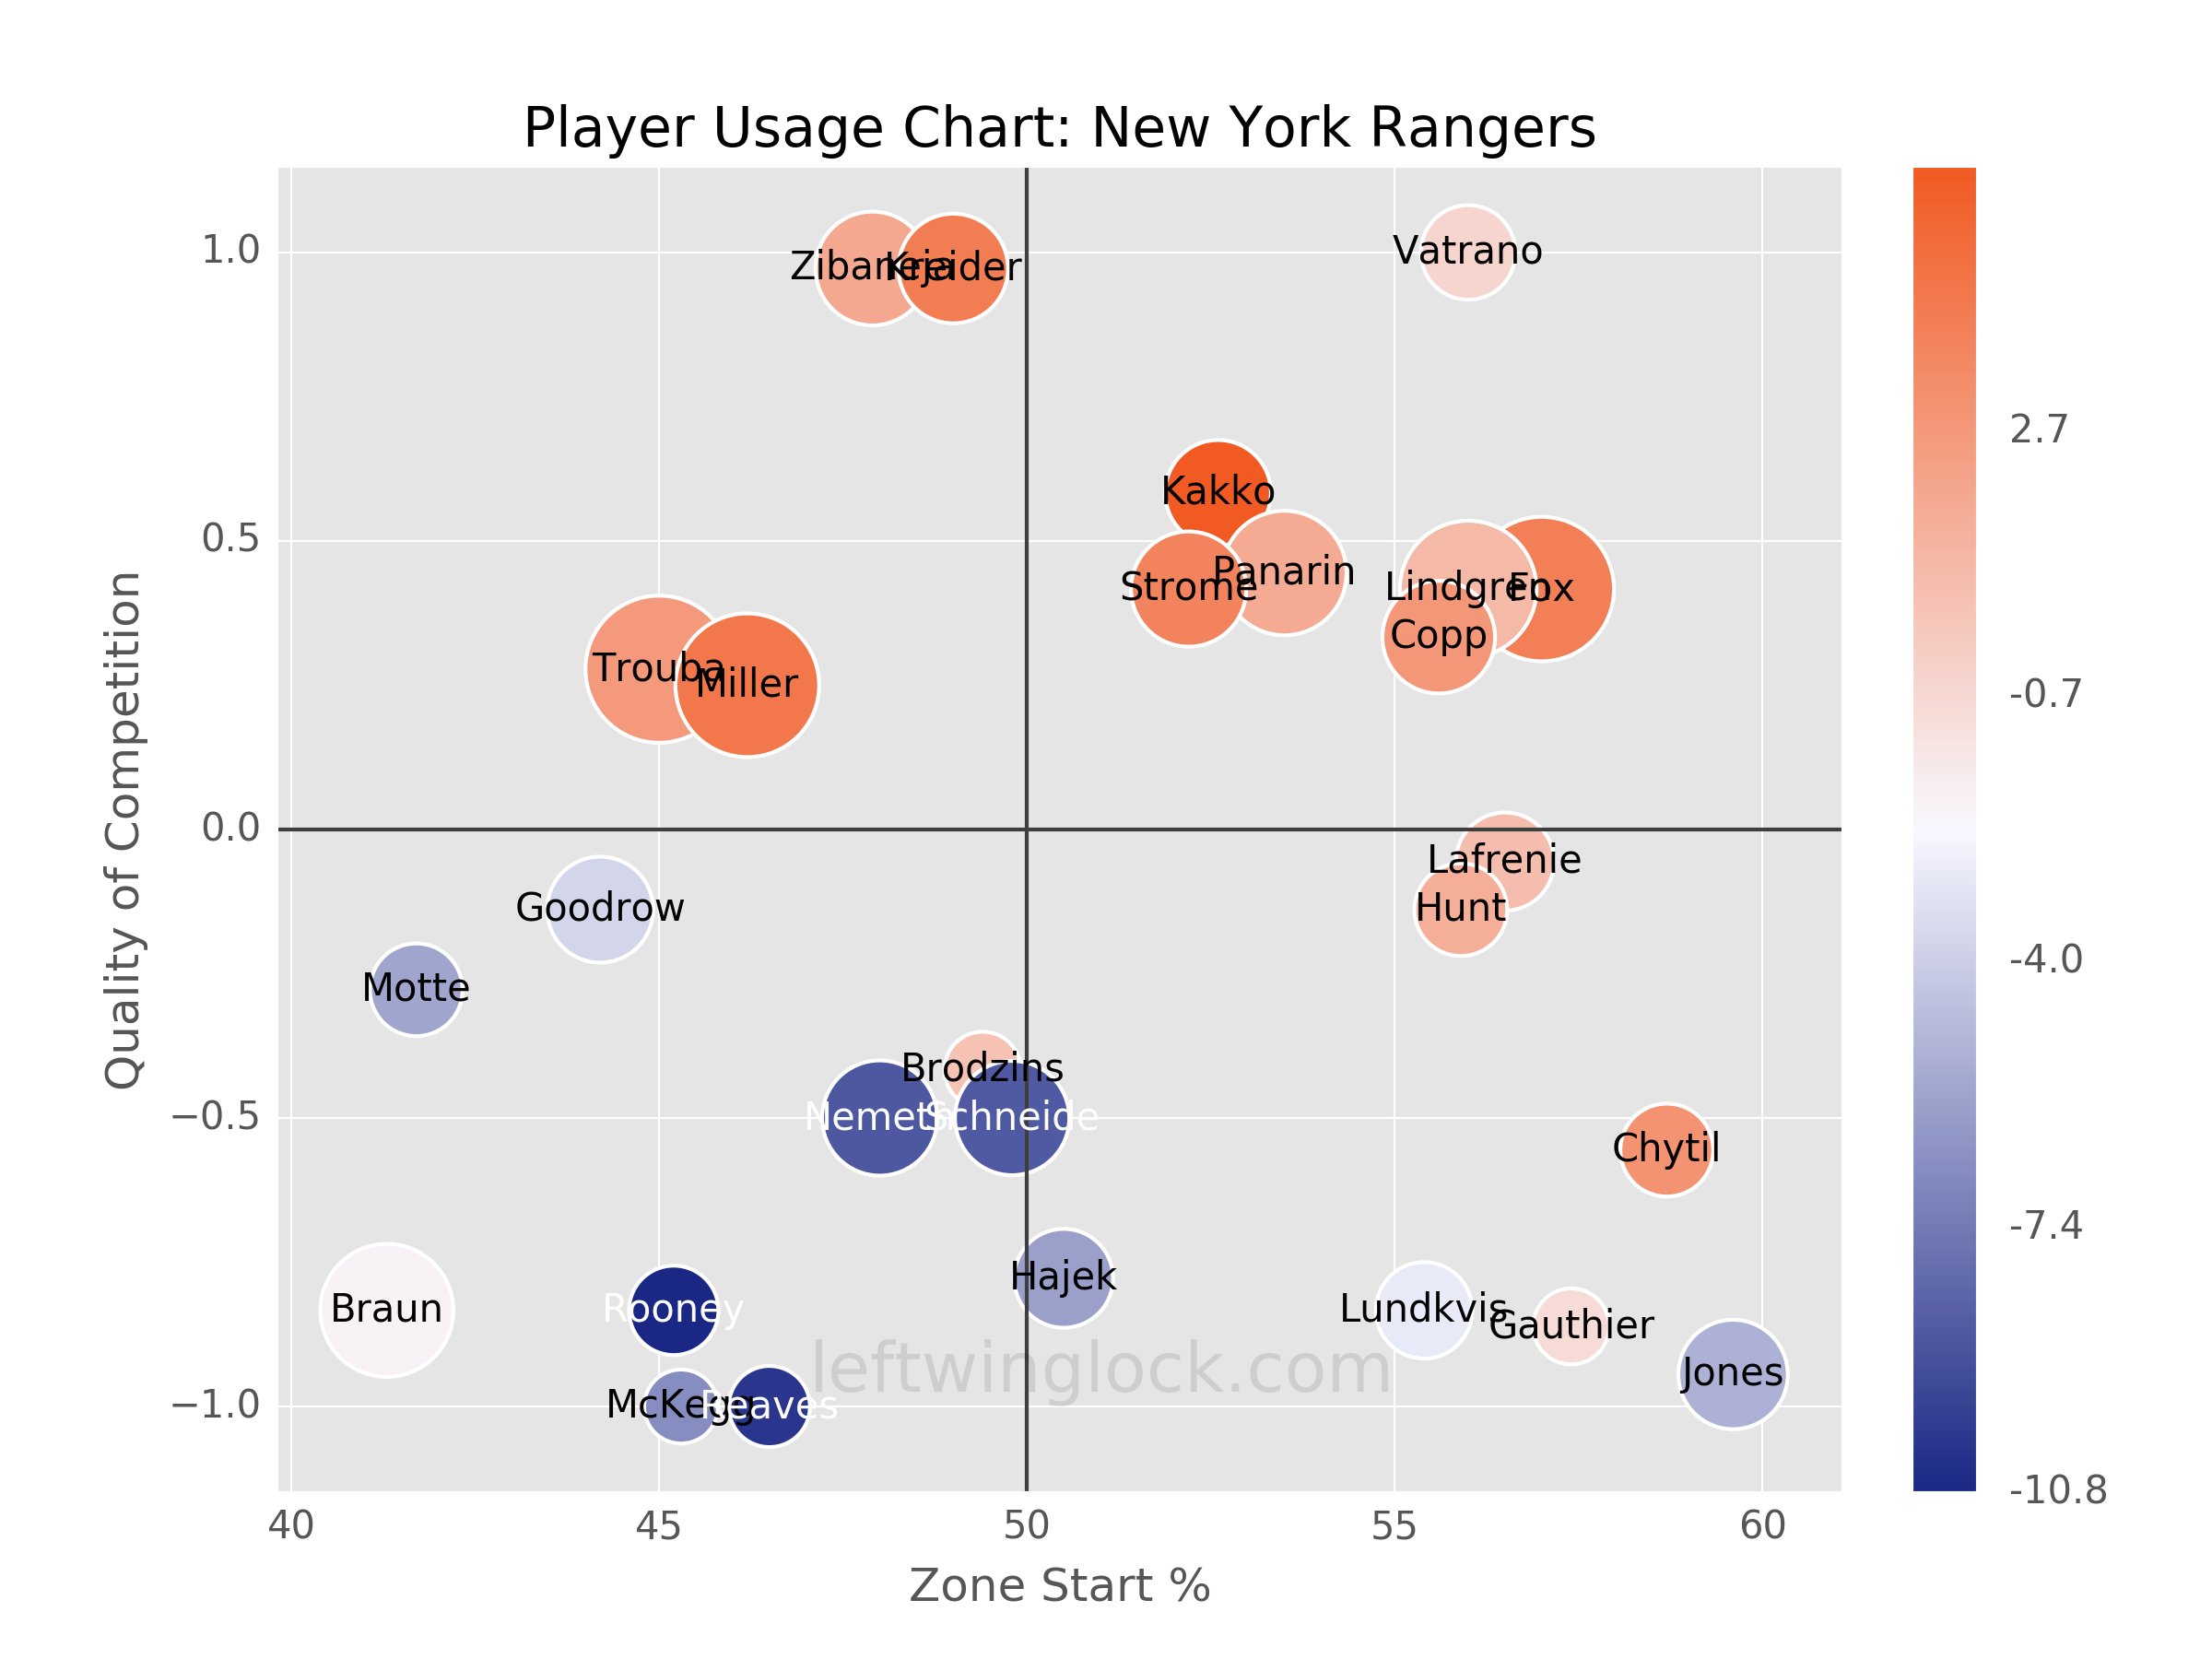 New York Rangers Player Usage Chart